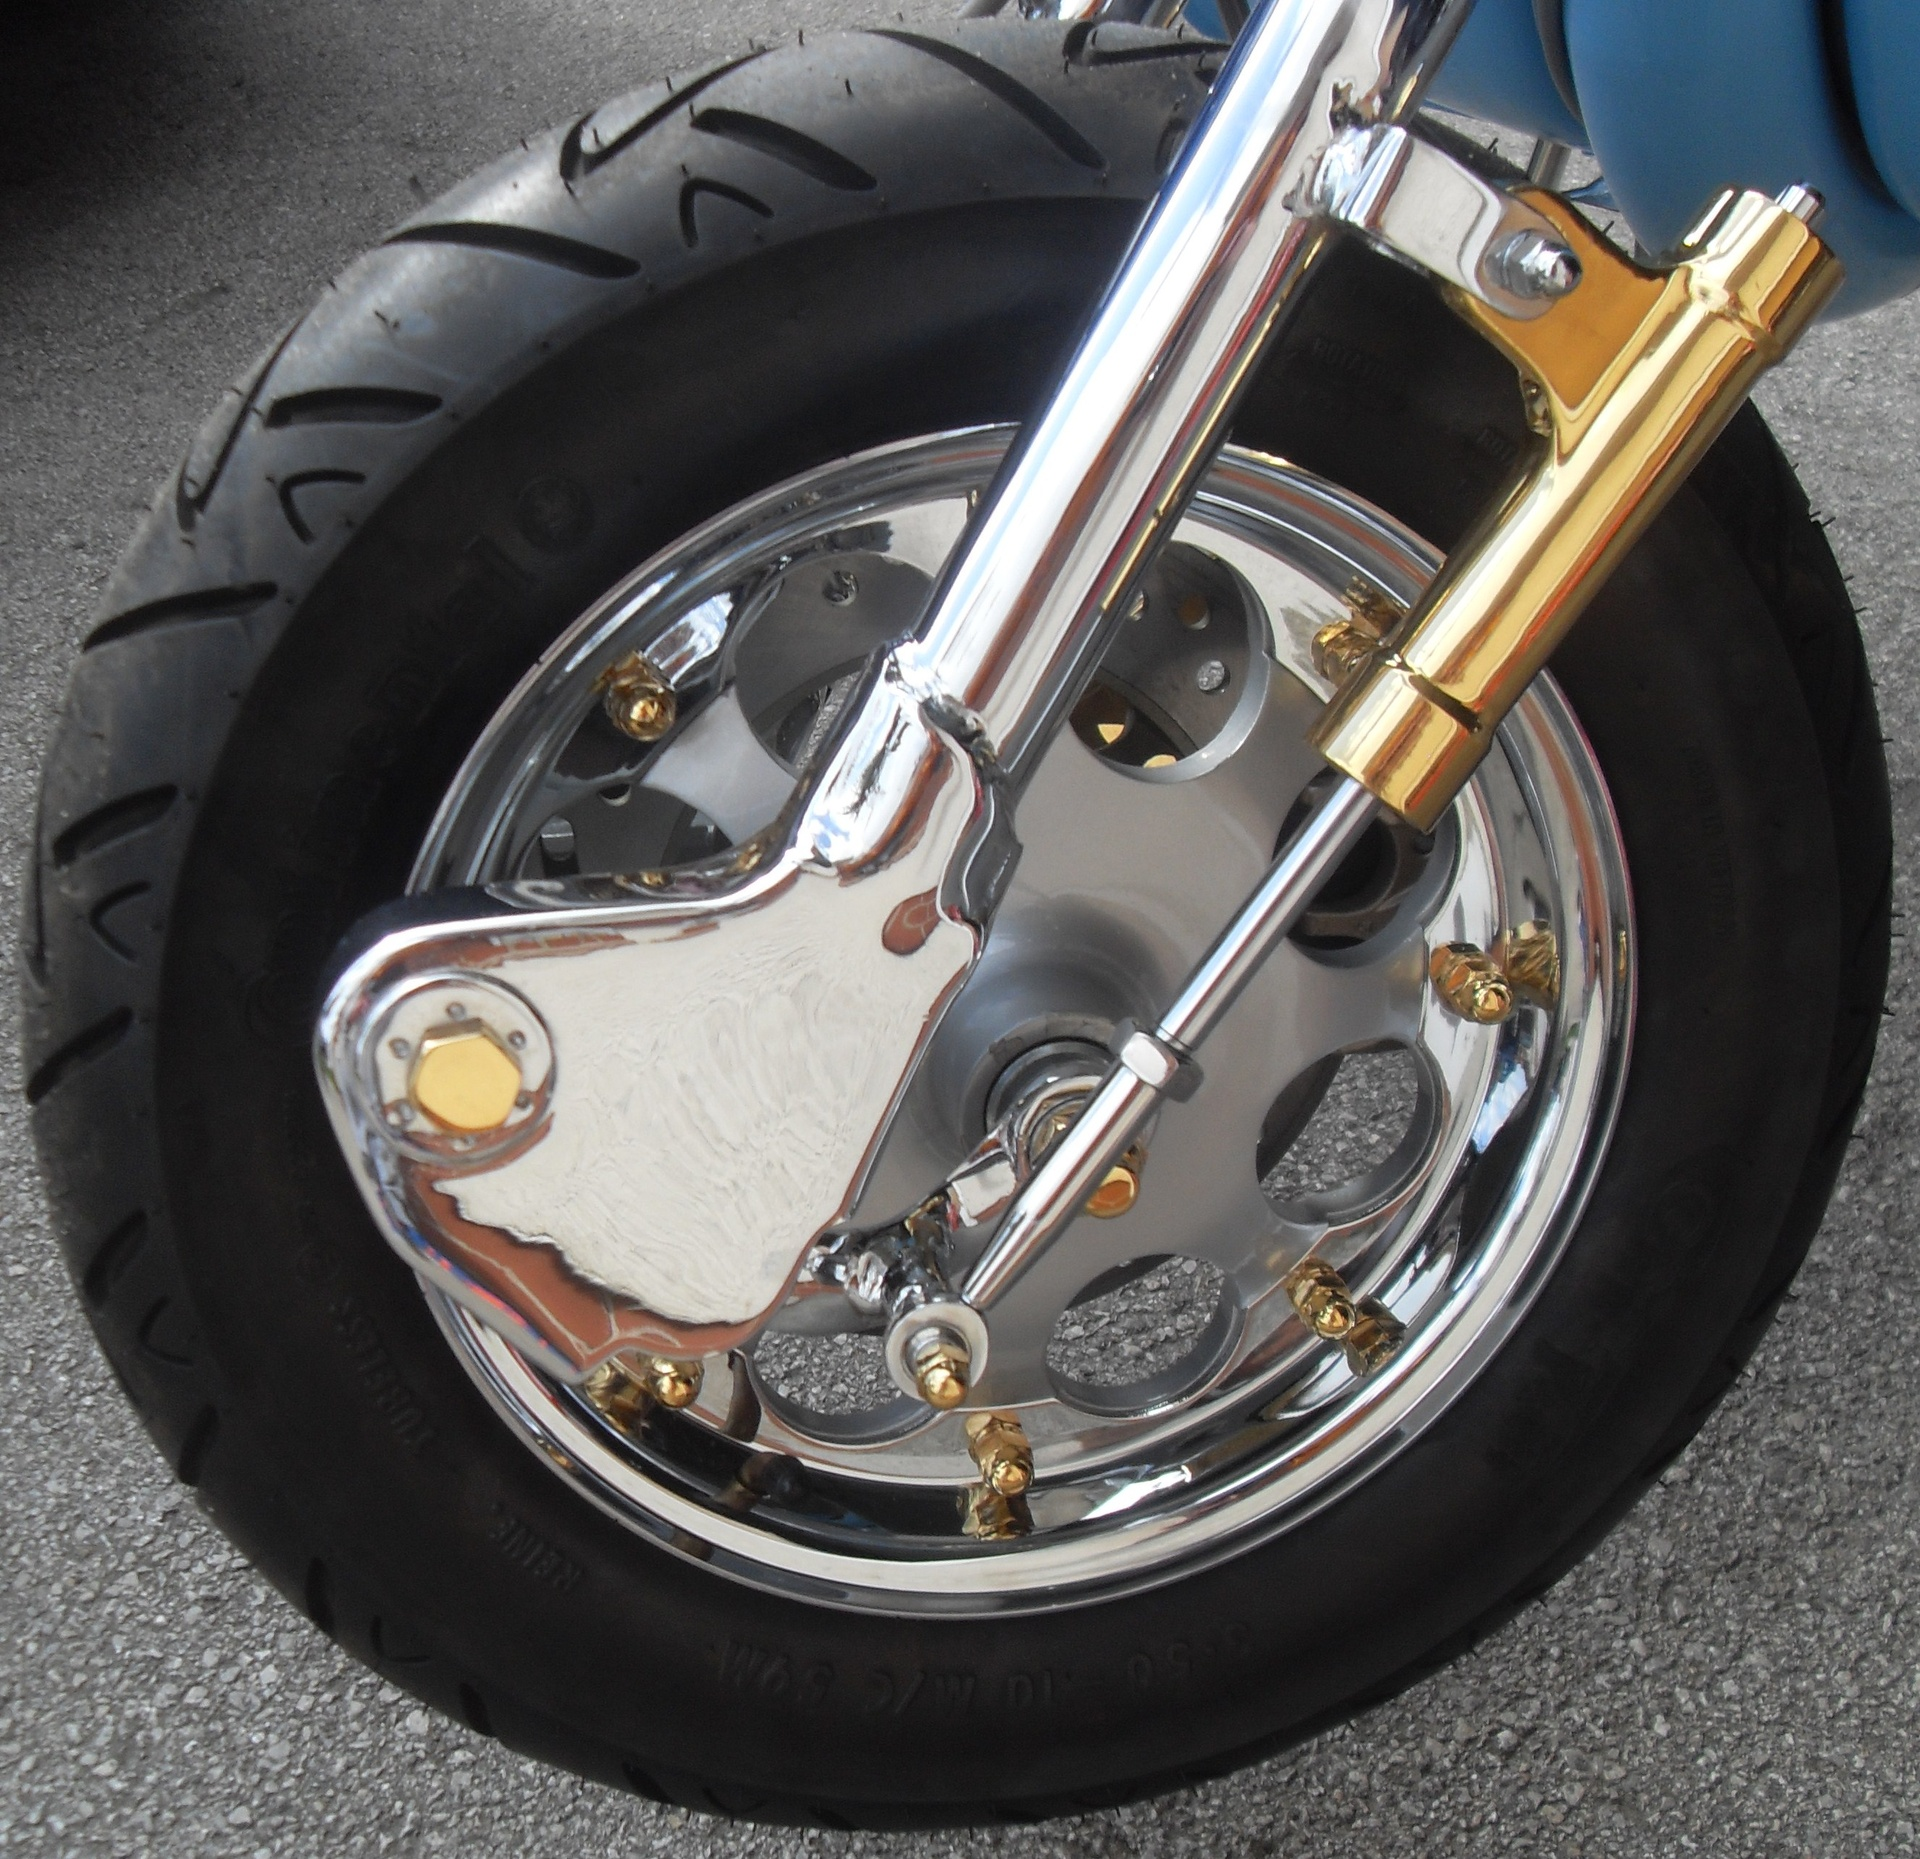 Gold plated dampers